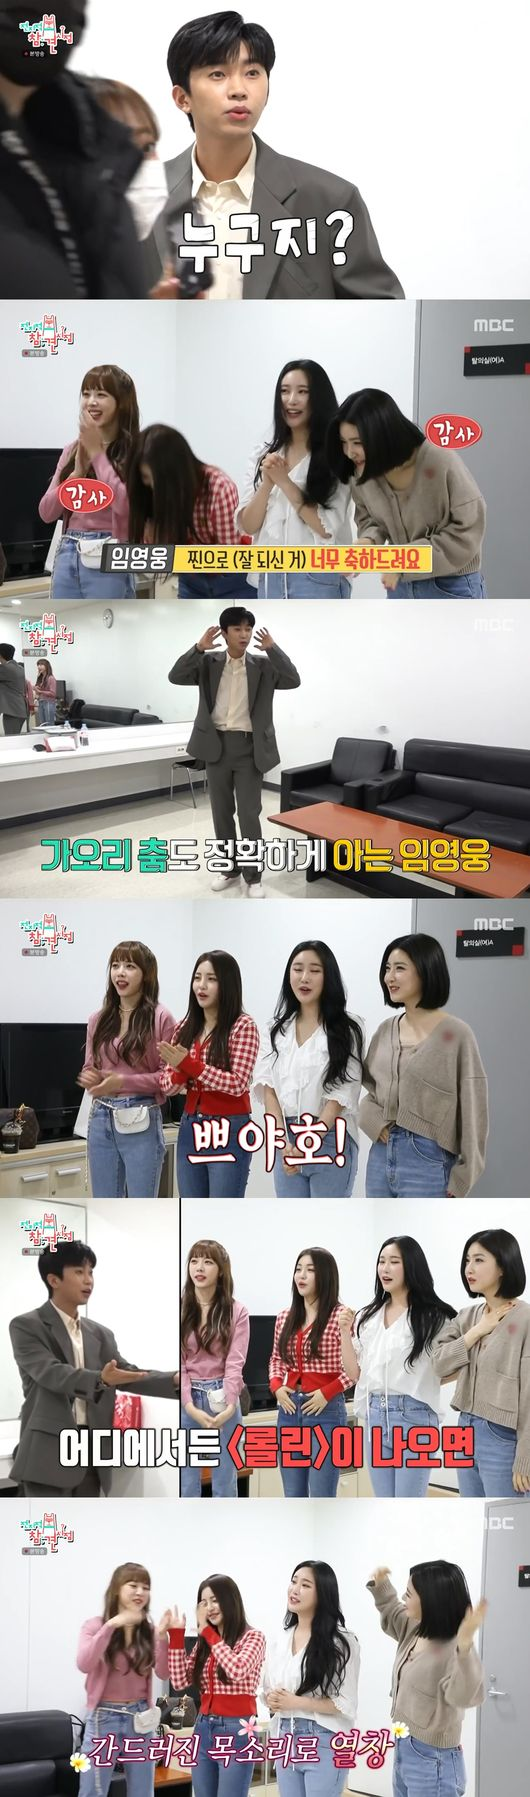 'At Battle' Brave Girls X Lim Hero,'Rolin' Challenge Completely Digested...  Chanwon Lee, fan heart explodes on phone connection [어저께TV]